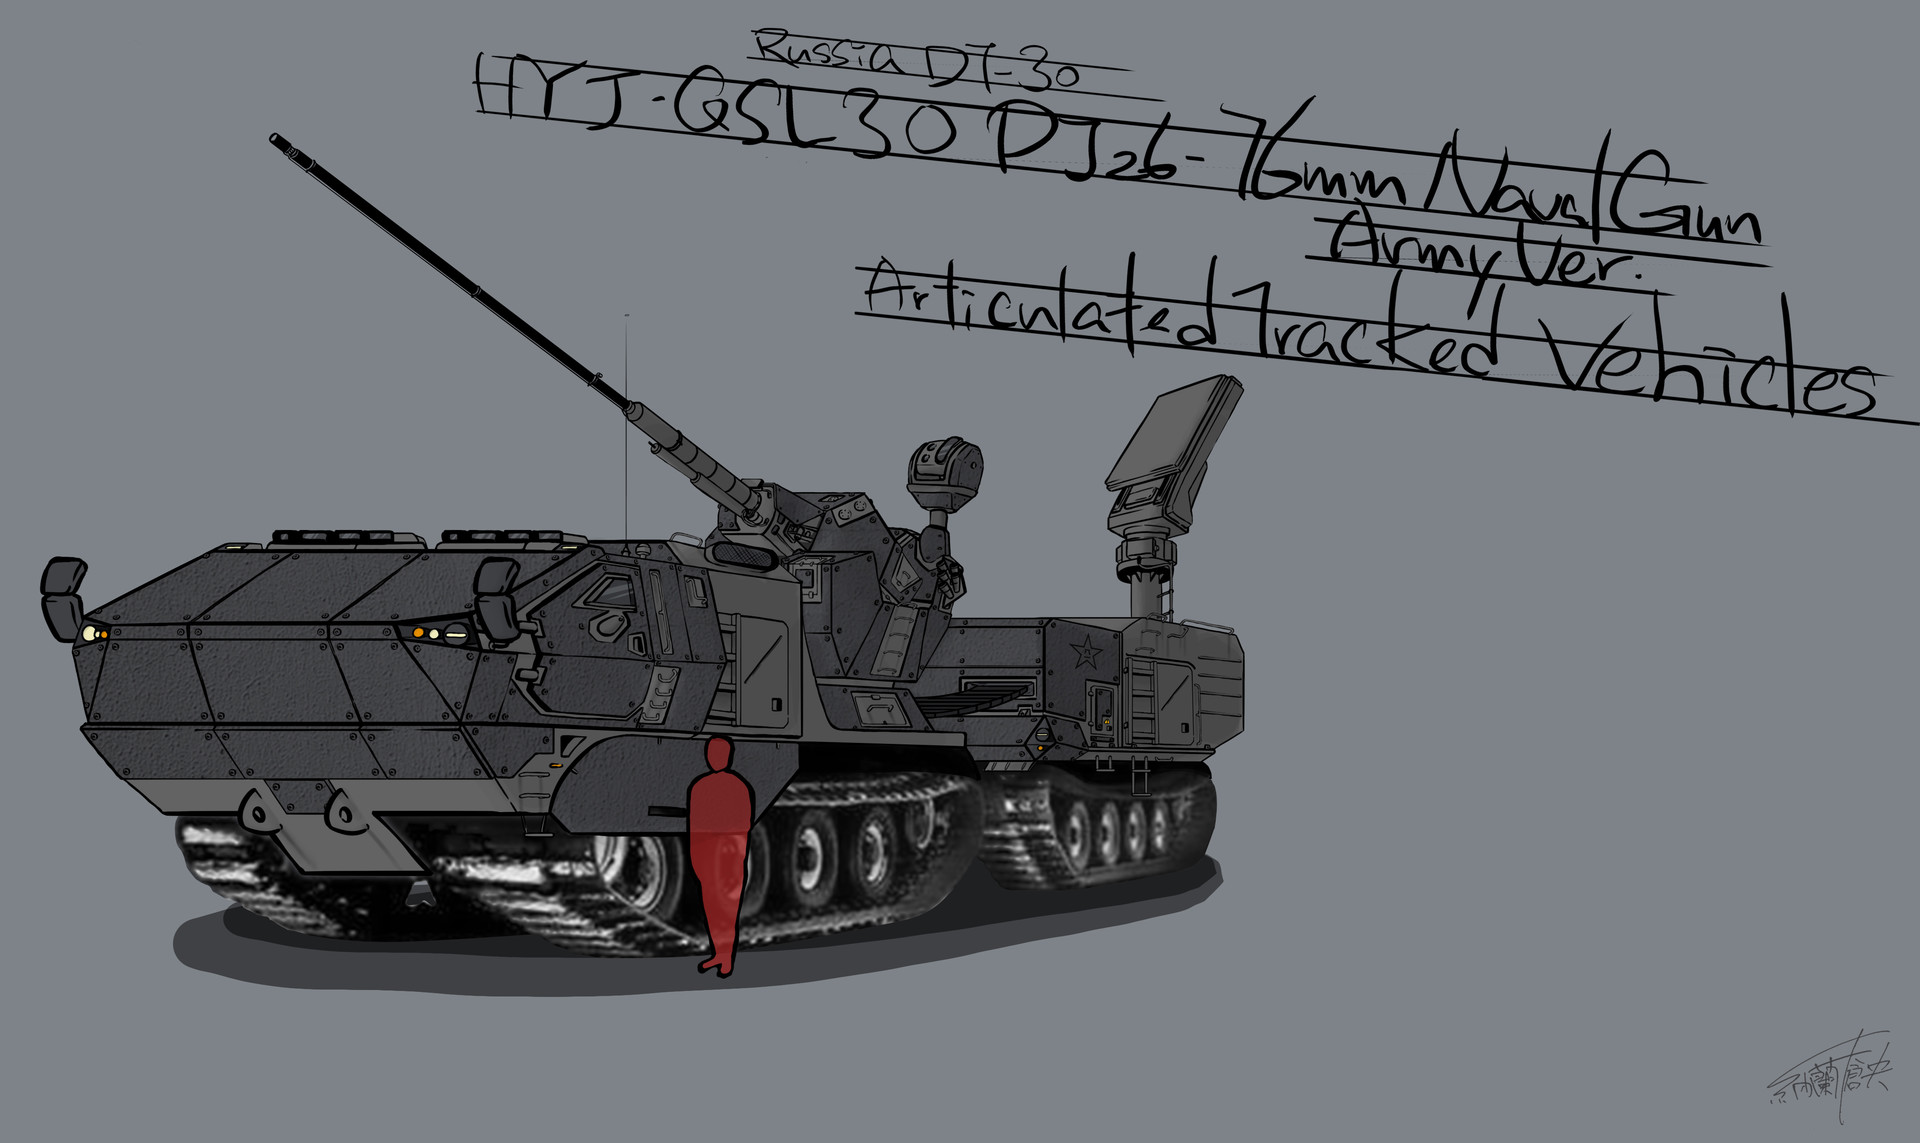 76mm Naval Gun(Army Ver.) Articulated Tracked Vehicles